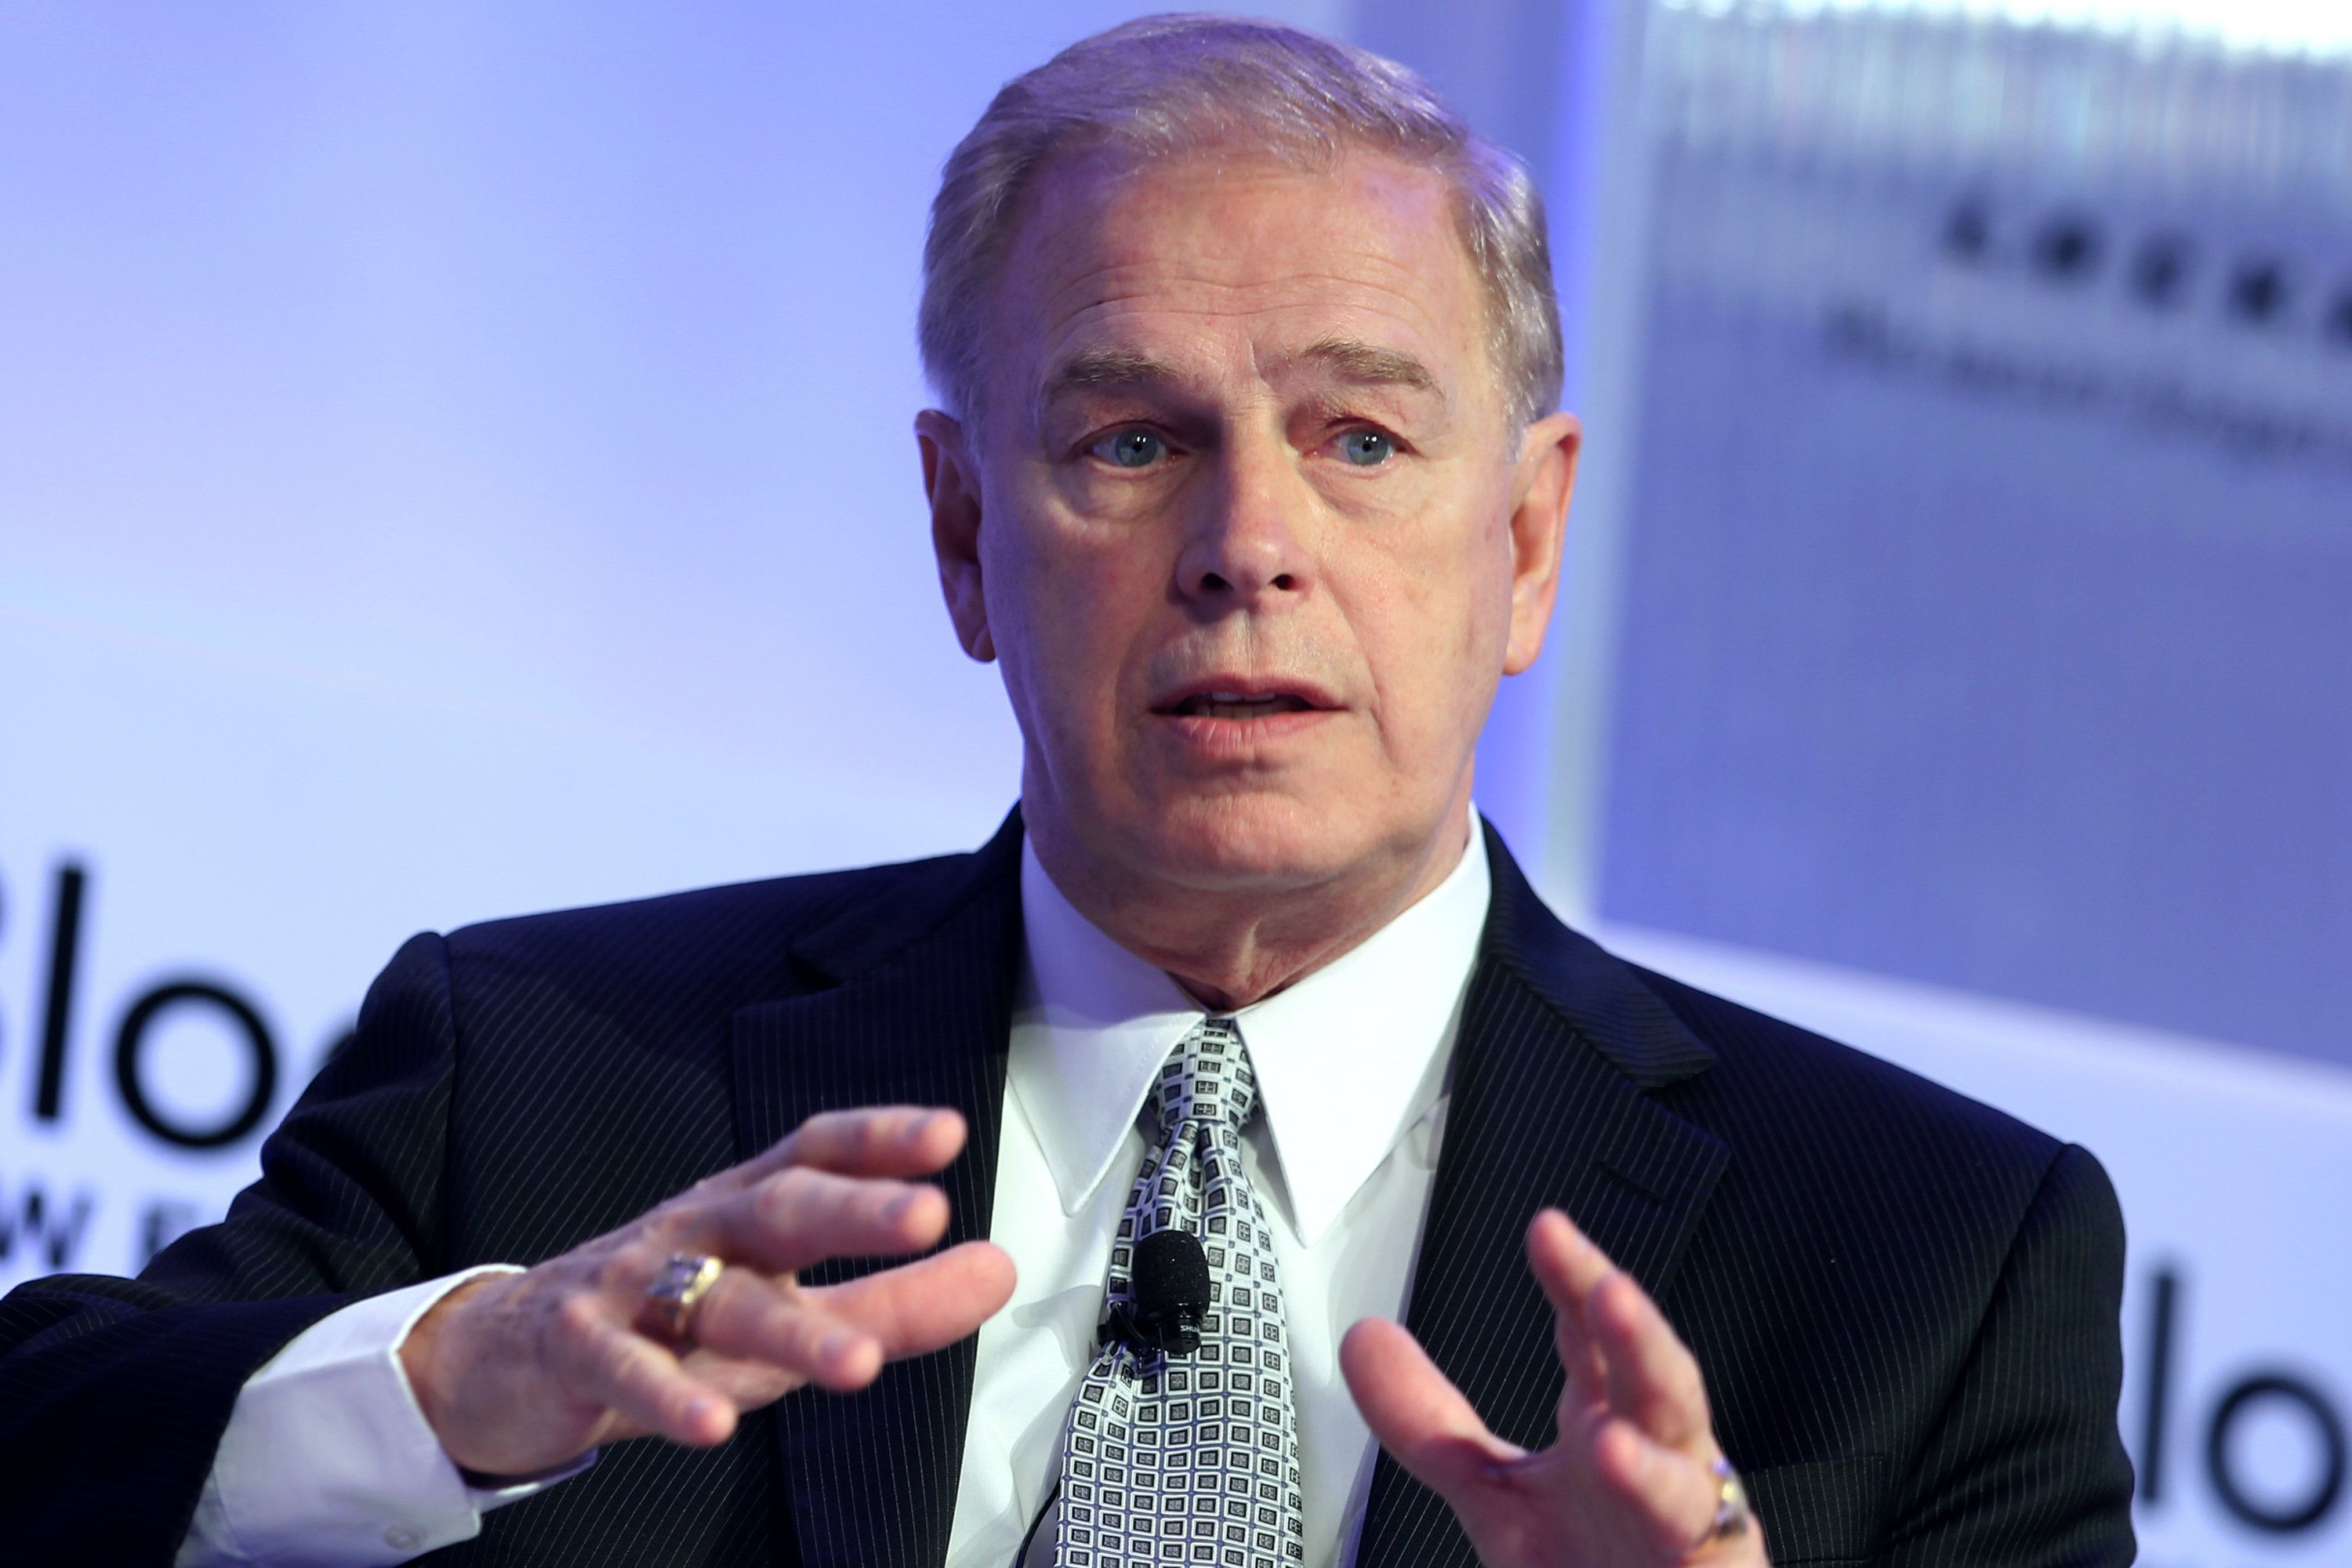 Ted Strickland, former Governor of Ohio, speaks during the Bloomberg New Energy Finance Summit in New York, U.S., on Tuesday, April 5, 2011. Bloomberg New Energy Finance provides industry information and analysis to investors, corporations and governments in clean energy, low carbon technologies and the carbon markets. Photographer: Jin Lee/Bloomberg via Getty Images